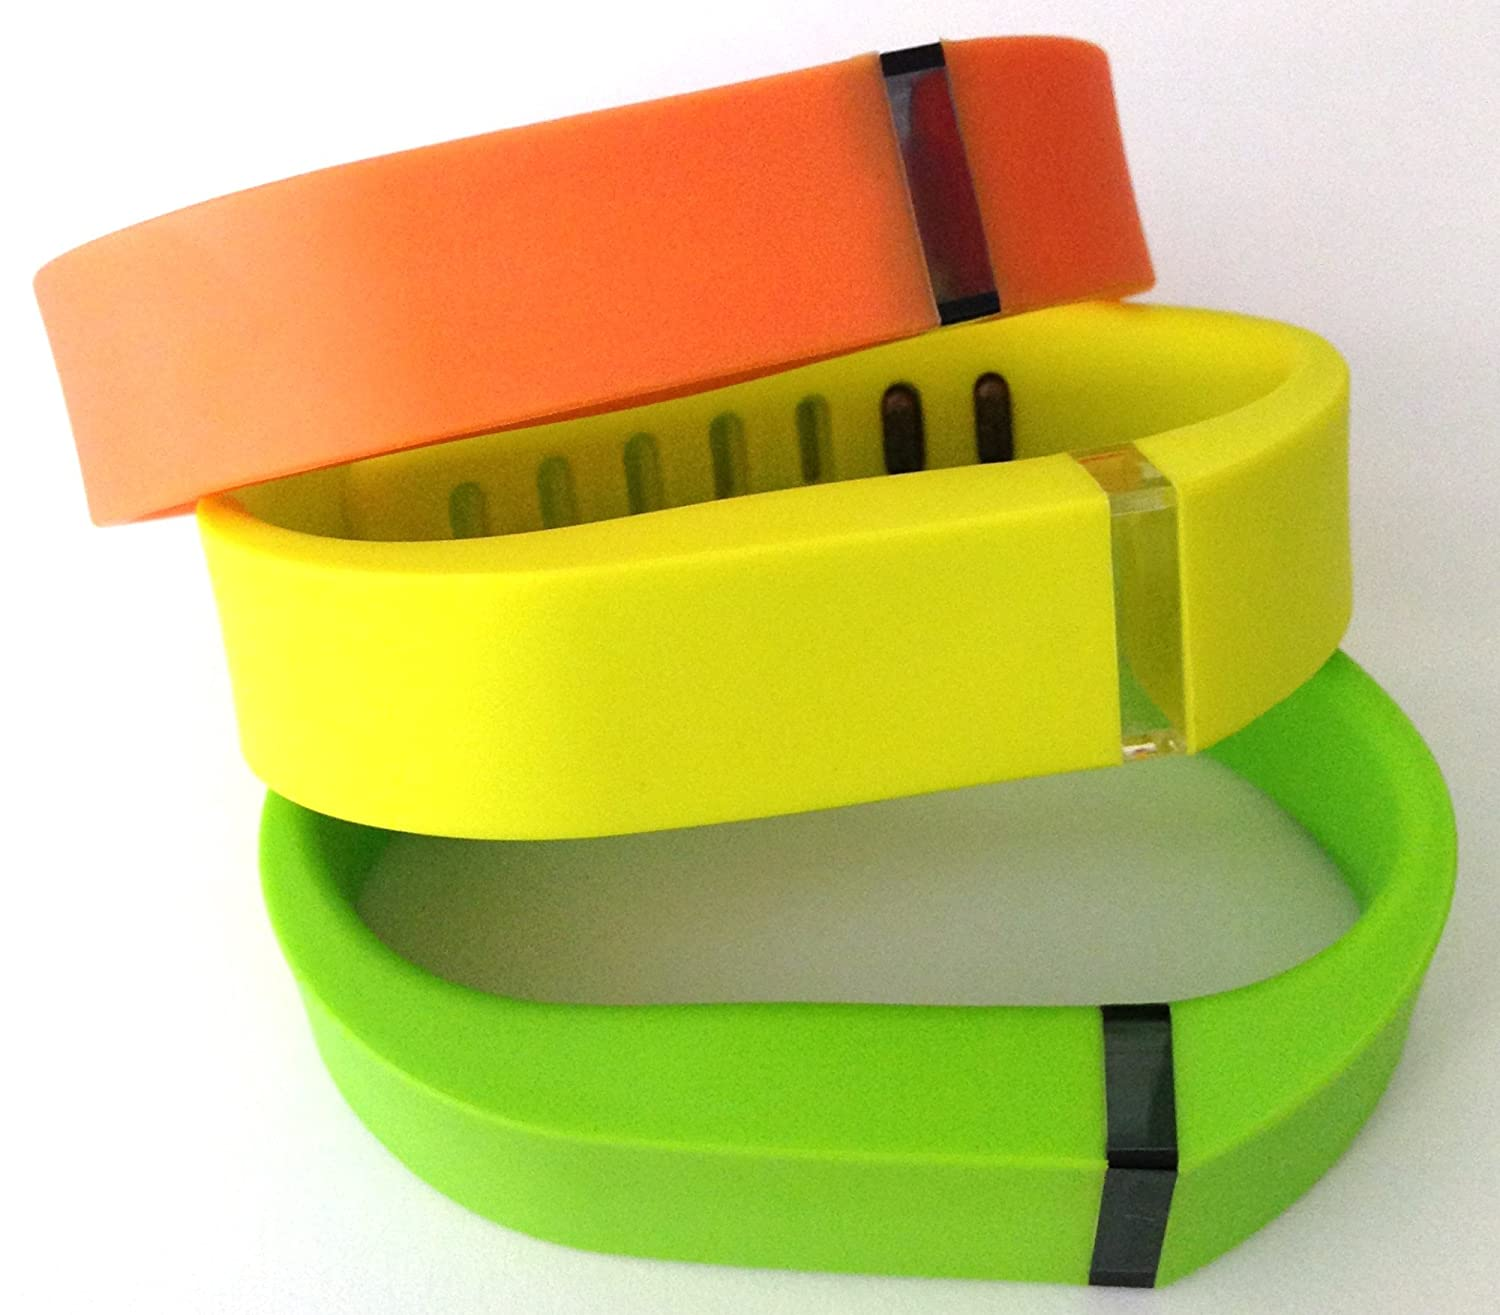 Small S 1pc Orange 1pc Green (Lime) 1pc Yellow Replacement Bands + 1pc Free Small Grey Band With Clasp for Fitbit FLEX Only /No tracker/ Wireless Activity Bracelet Sport Wristband Fit Bit Flex Bracelet Sport Arm Band Armband